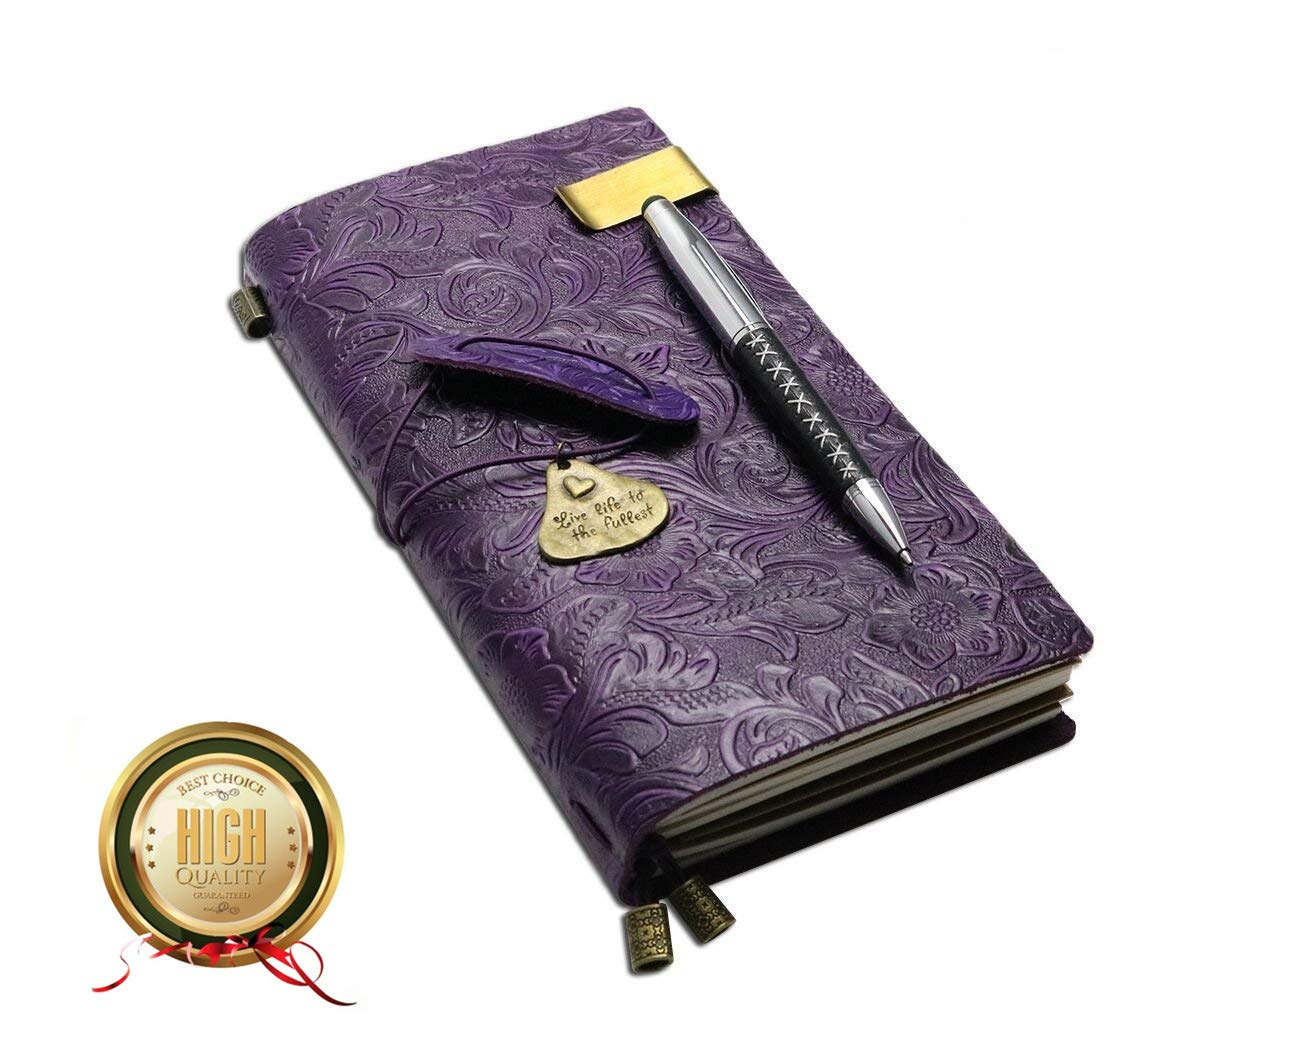 Refillable Handmade Traveler's Notebook, Leather Travel Journal Vintage Notebook with Ballpoint Pen for Men & Women, Perfect for Writing, Gifts, Travelers, Standard Size 8.5'' x 4.5'' Inches - Purple by Sueroom